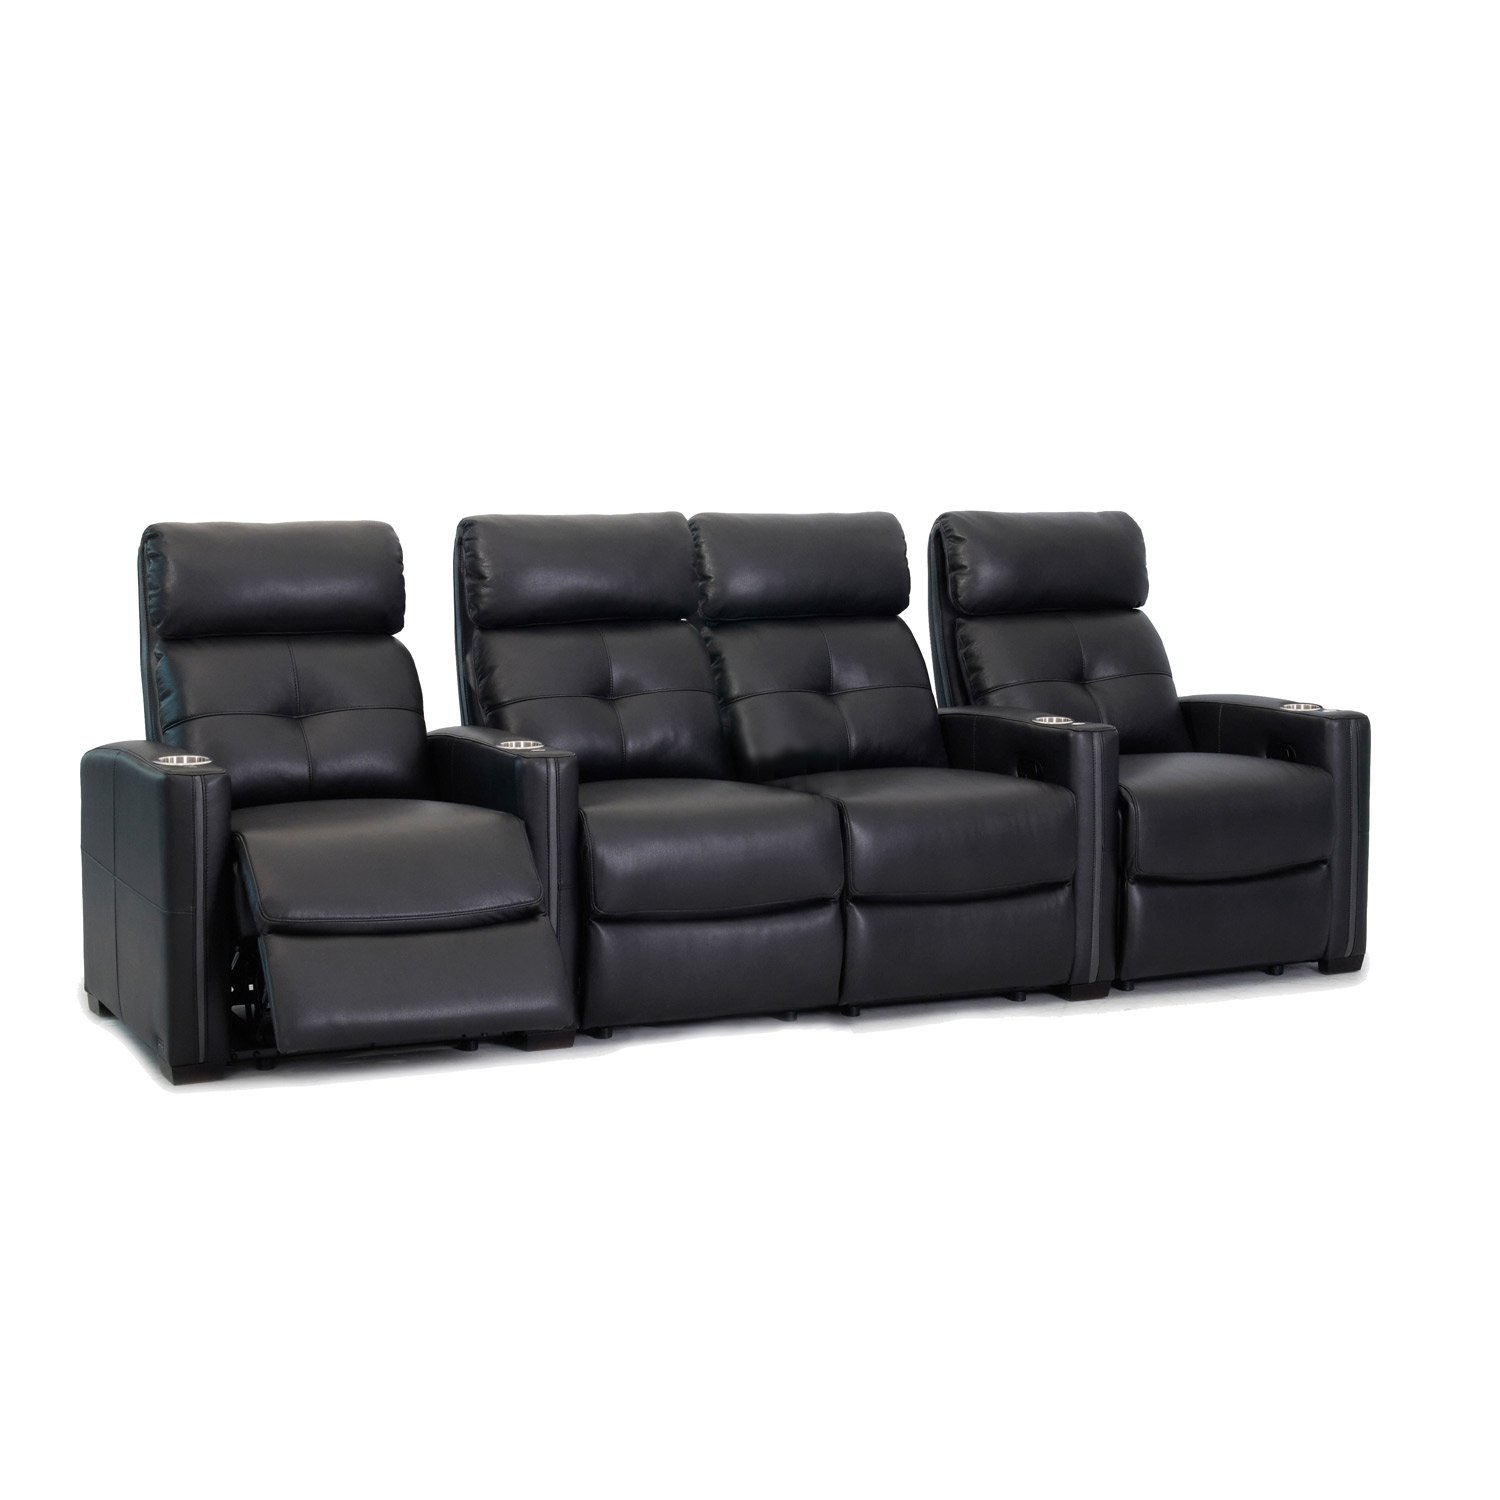 Octane Seating Cloud XS850 Home Theater Chairs - Black Bonded Leather - Manual Recline - Row 4 Seats with Center Loveseat - Space Saving Design